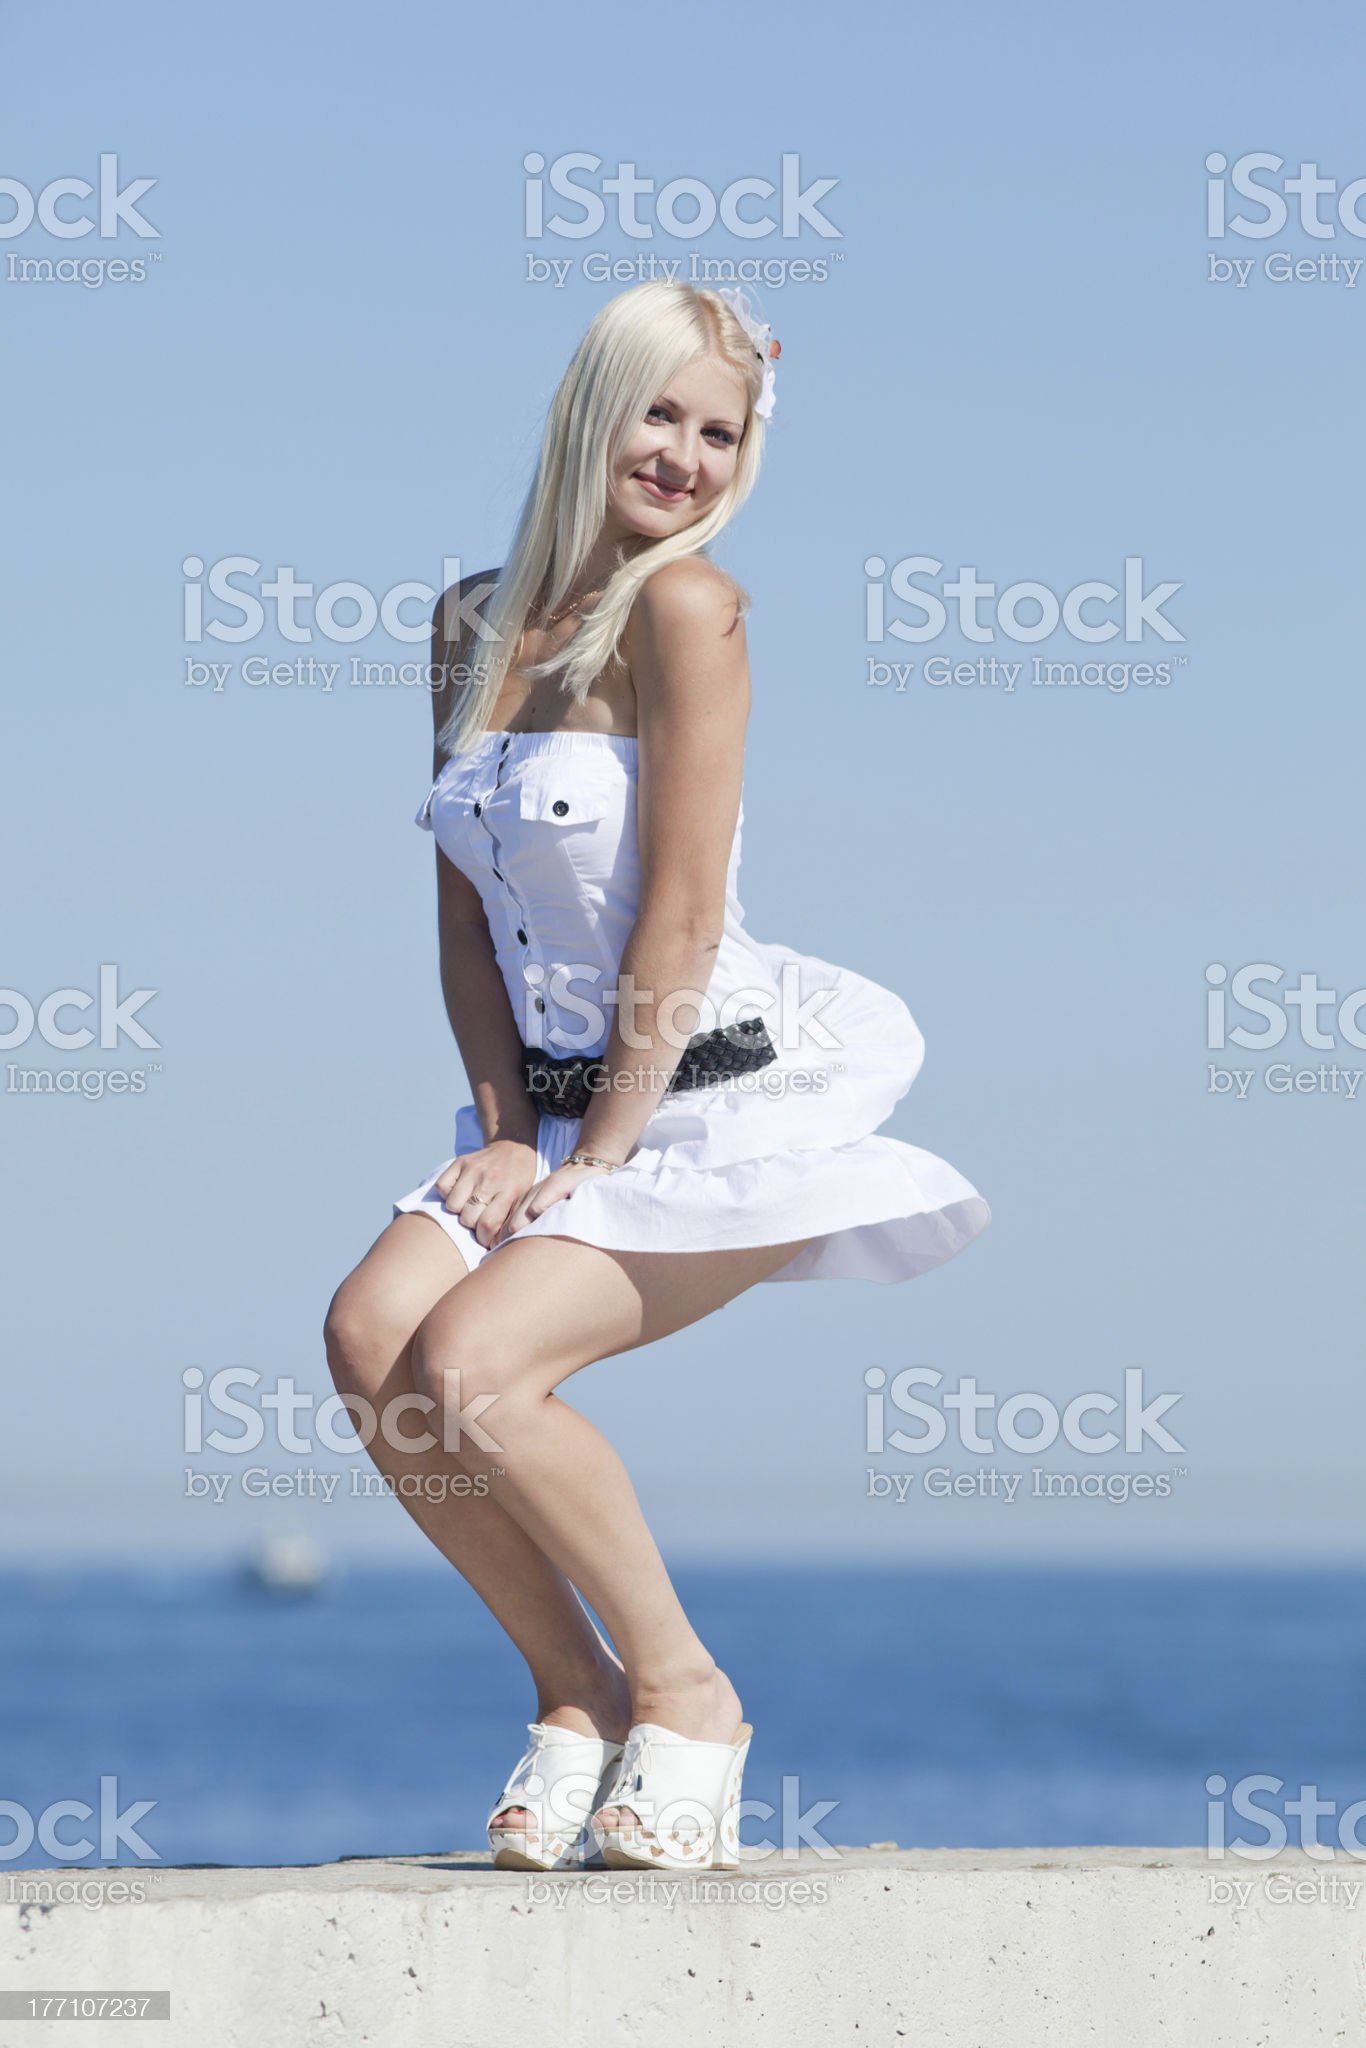 Girl smiling on open air royalty-free stock photo